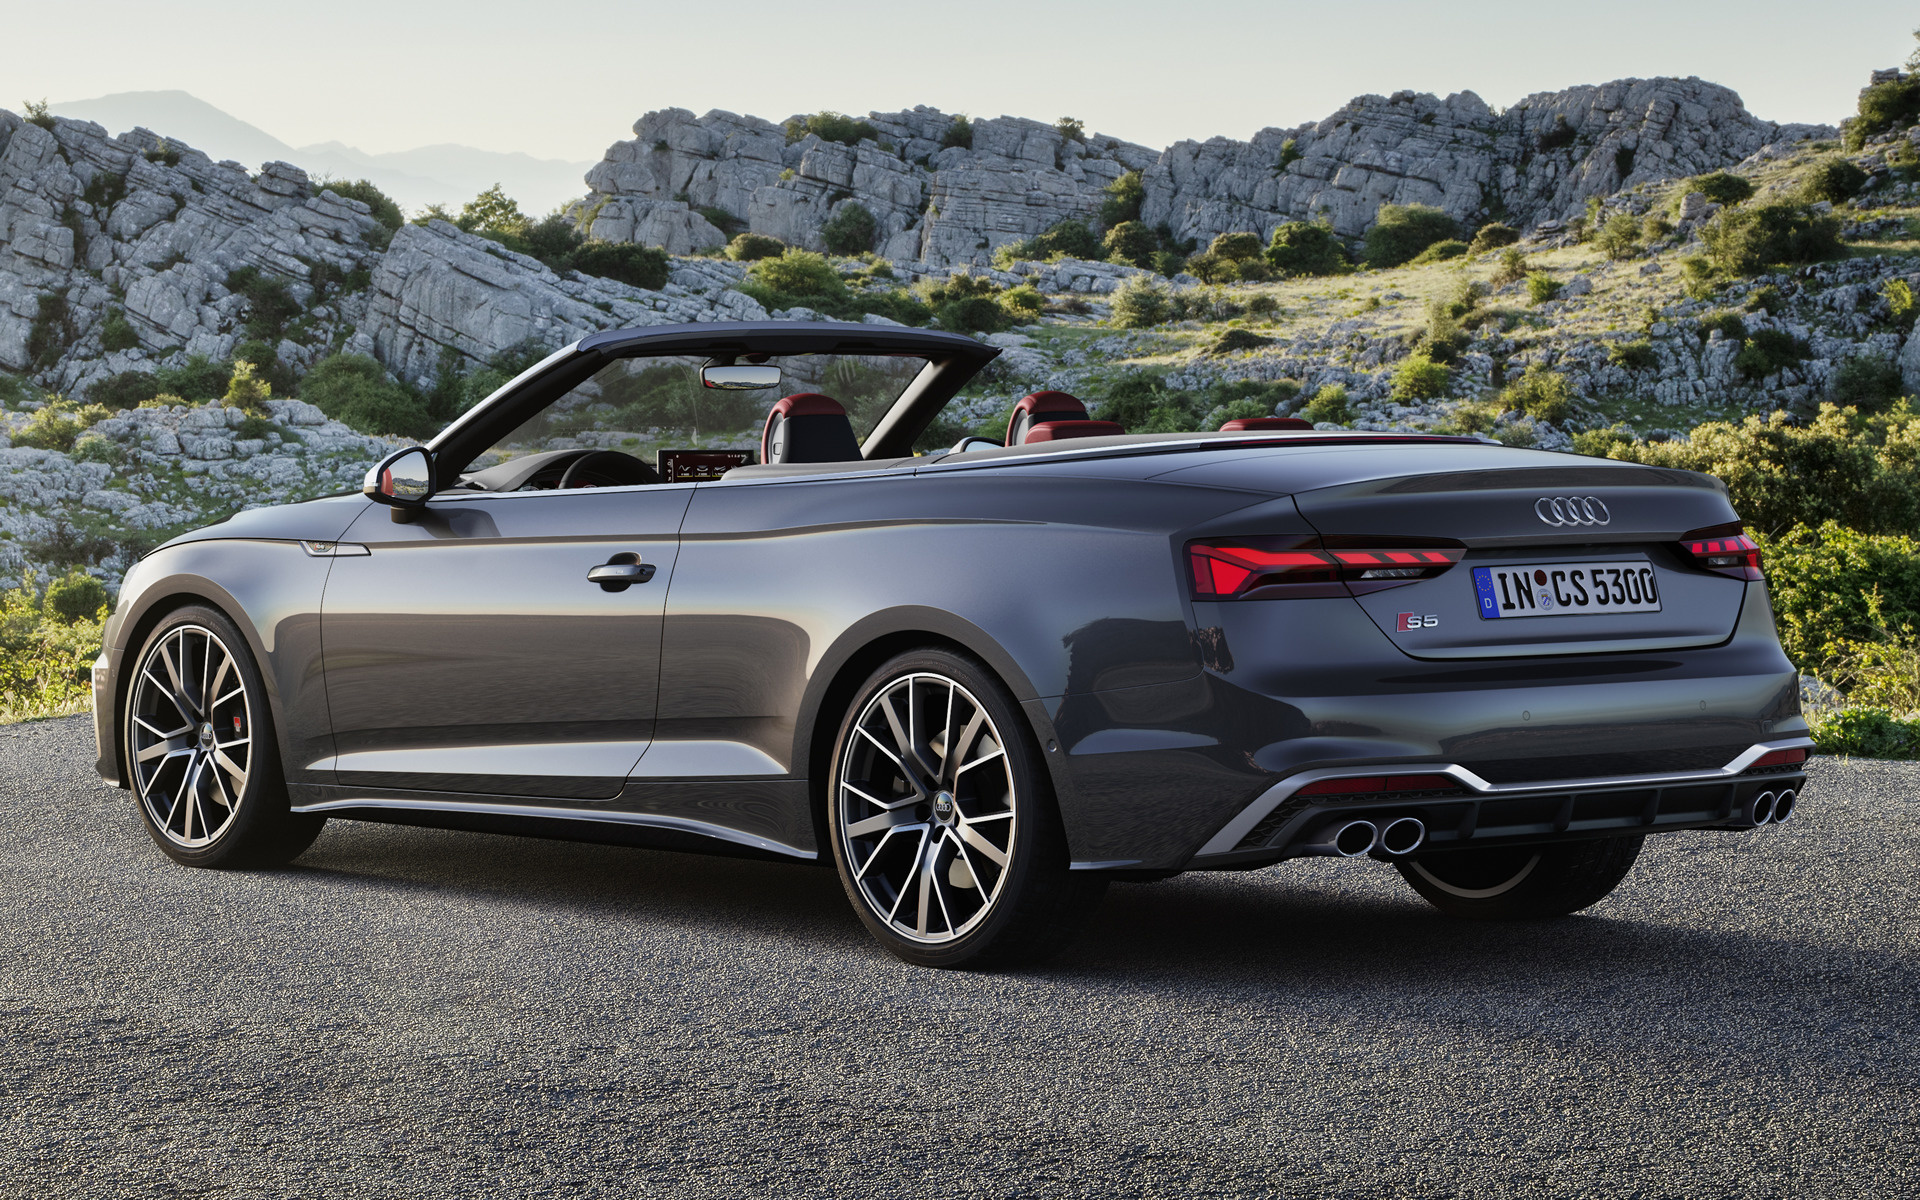 2020 Audi Rs5 Cabriolet Price, Design and Review